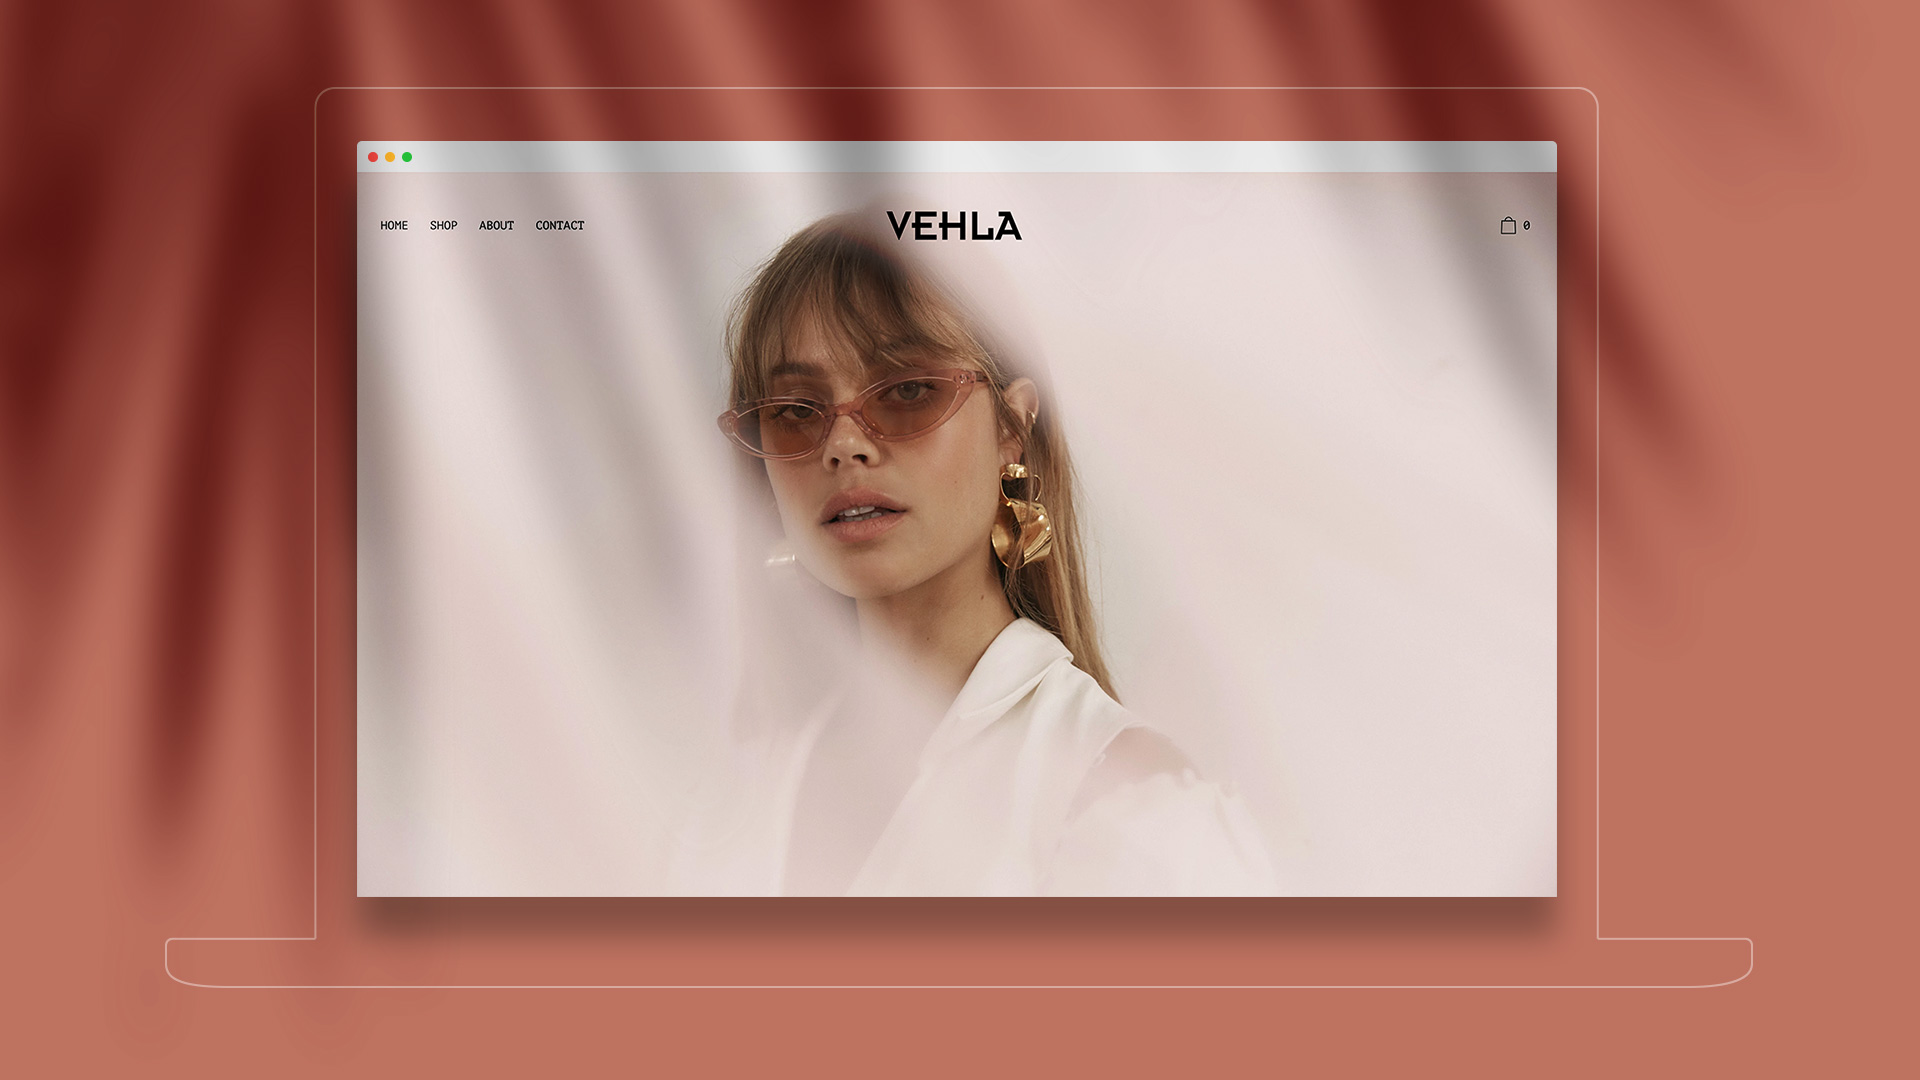 Nectar-&-Co-Vehla-Specs-Shopify Website Design.jpg